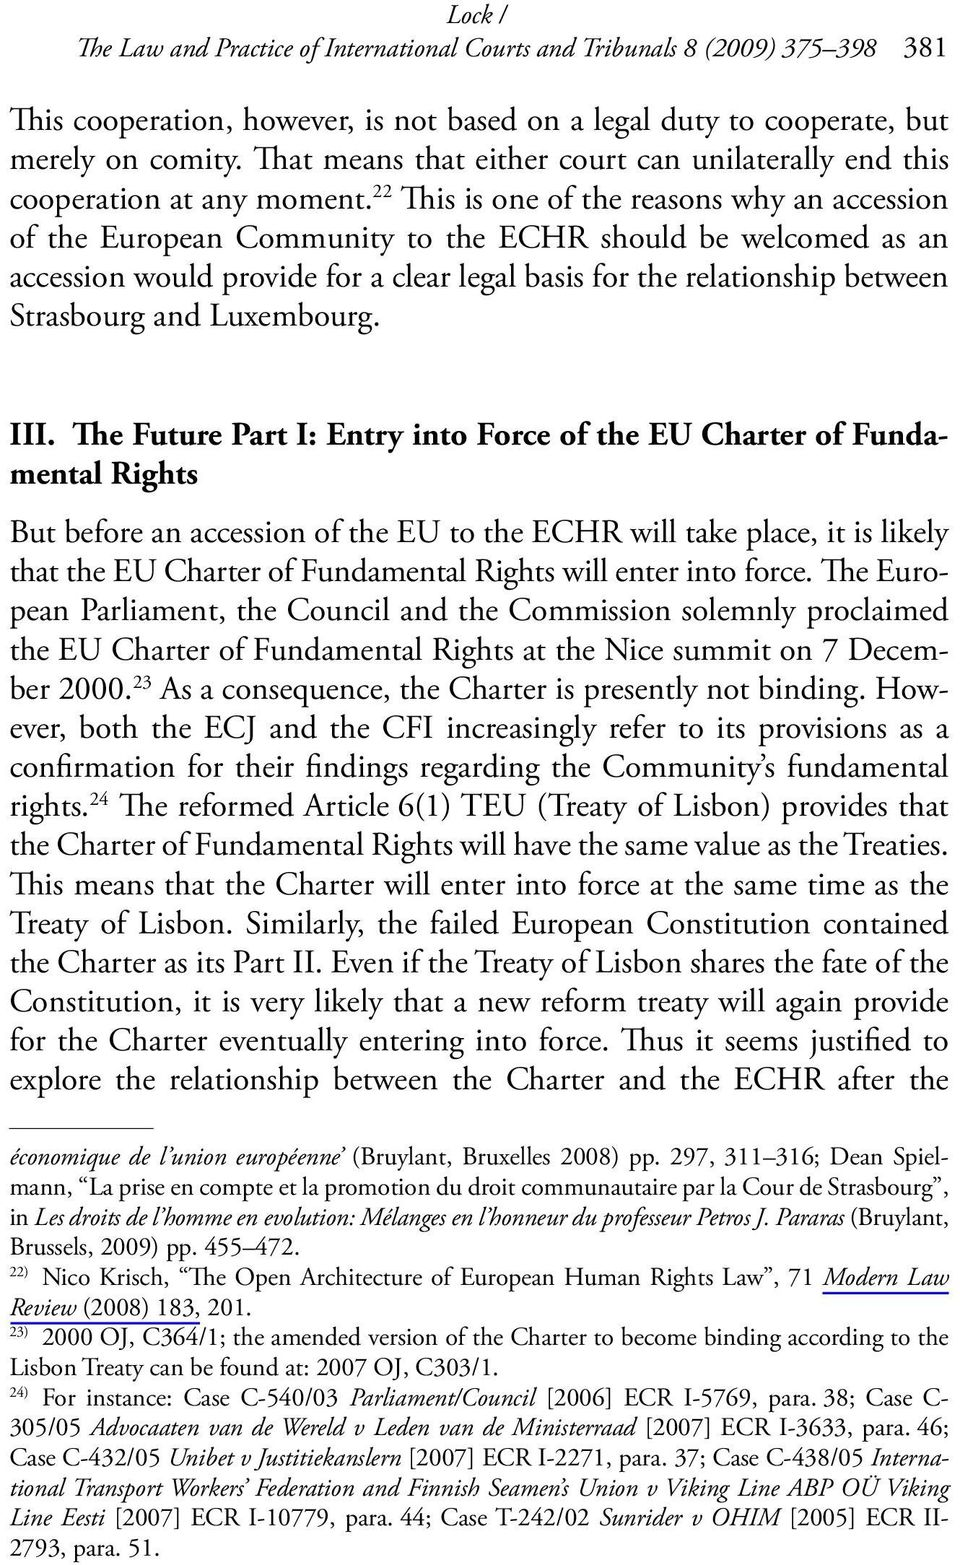 22 This is one of the reasons why an accession of the European Community to the ECHR should be welcomed as an accession would provide for a clear legal basis for the relationship between Strasbourg